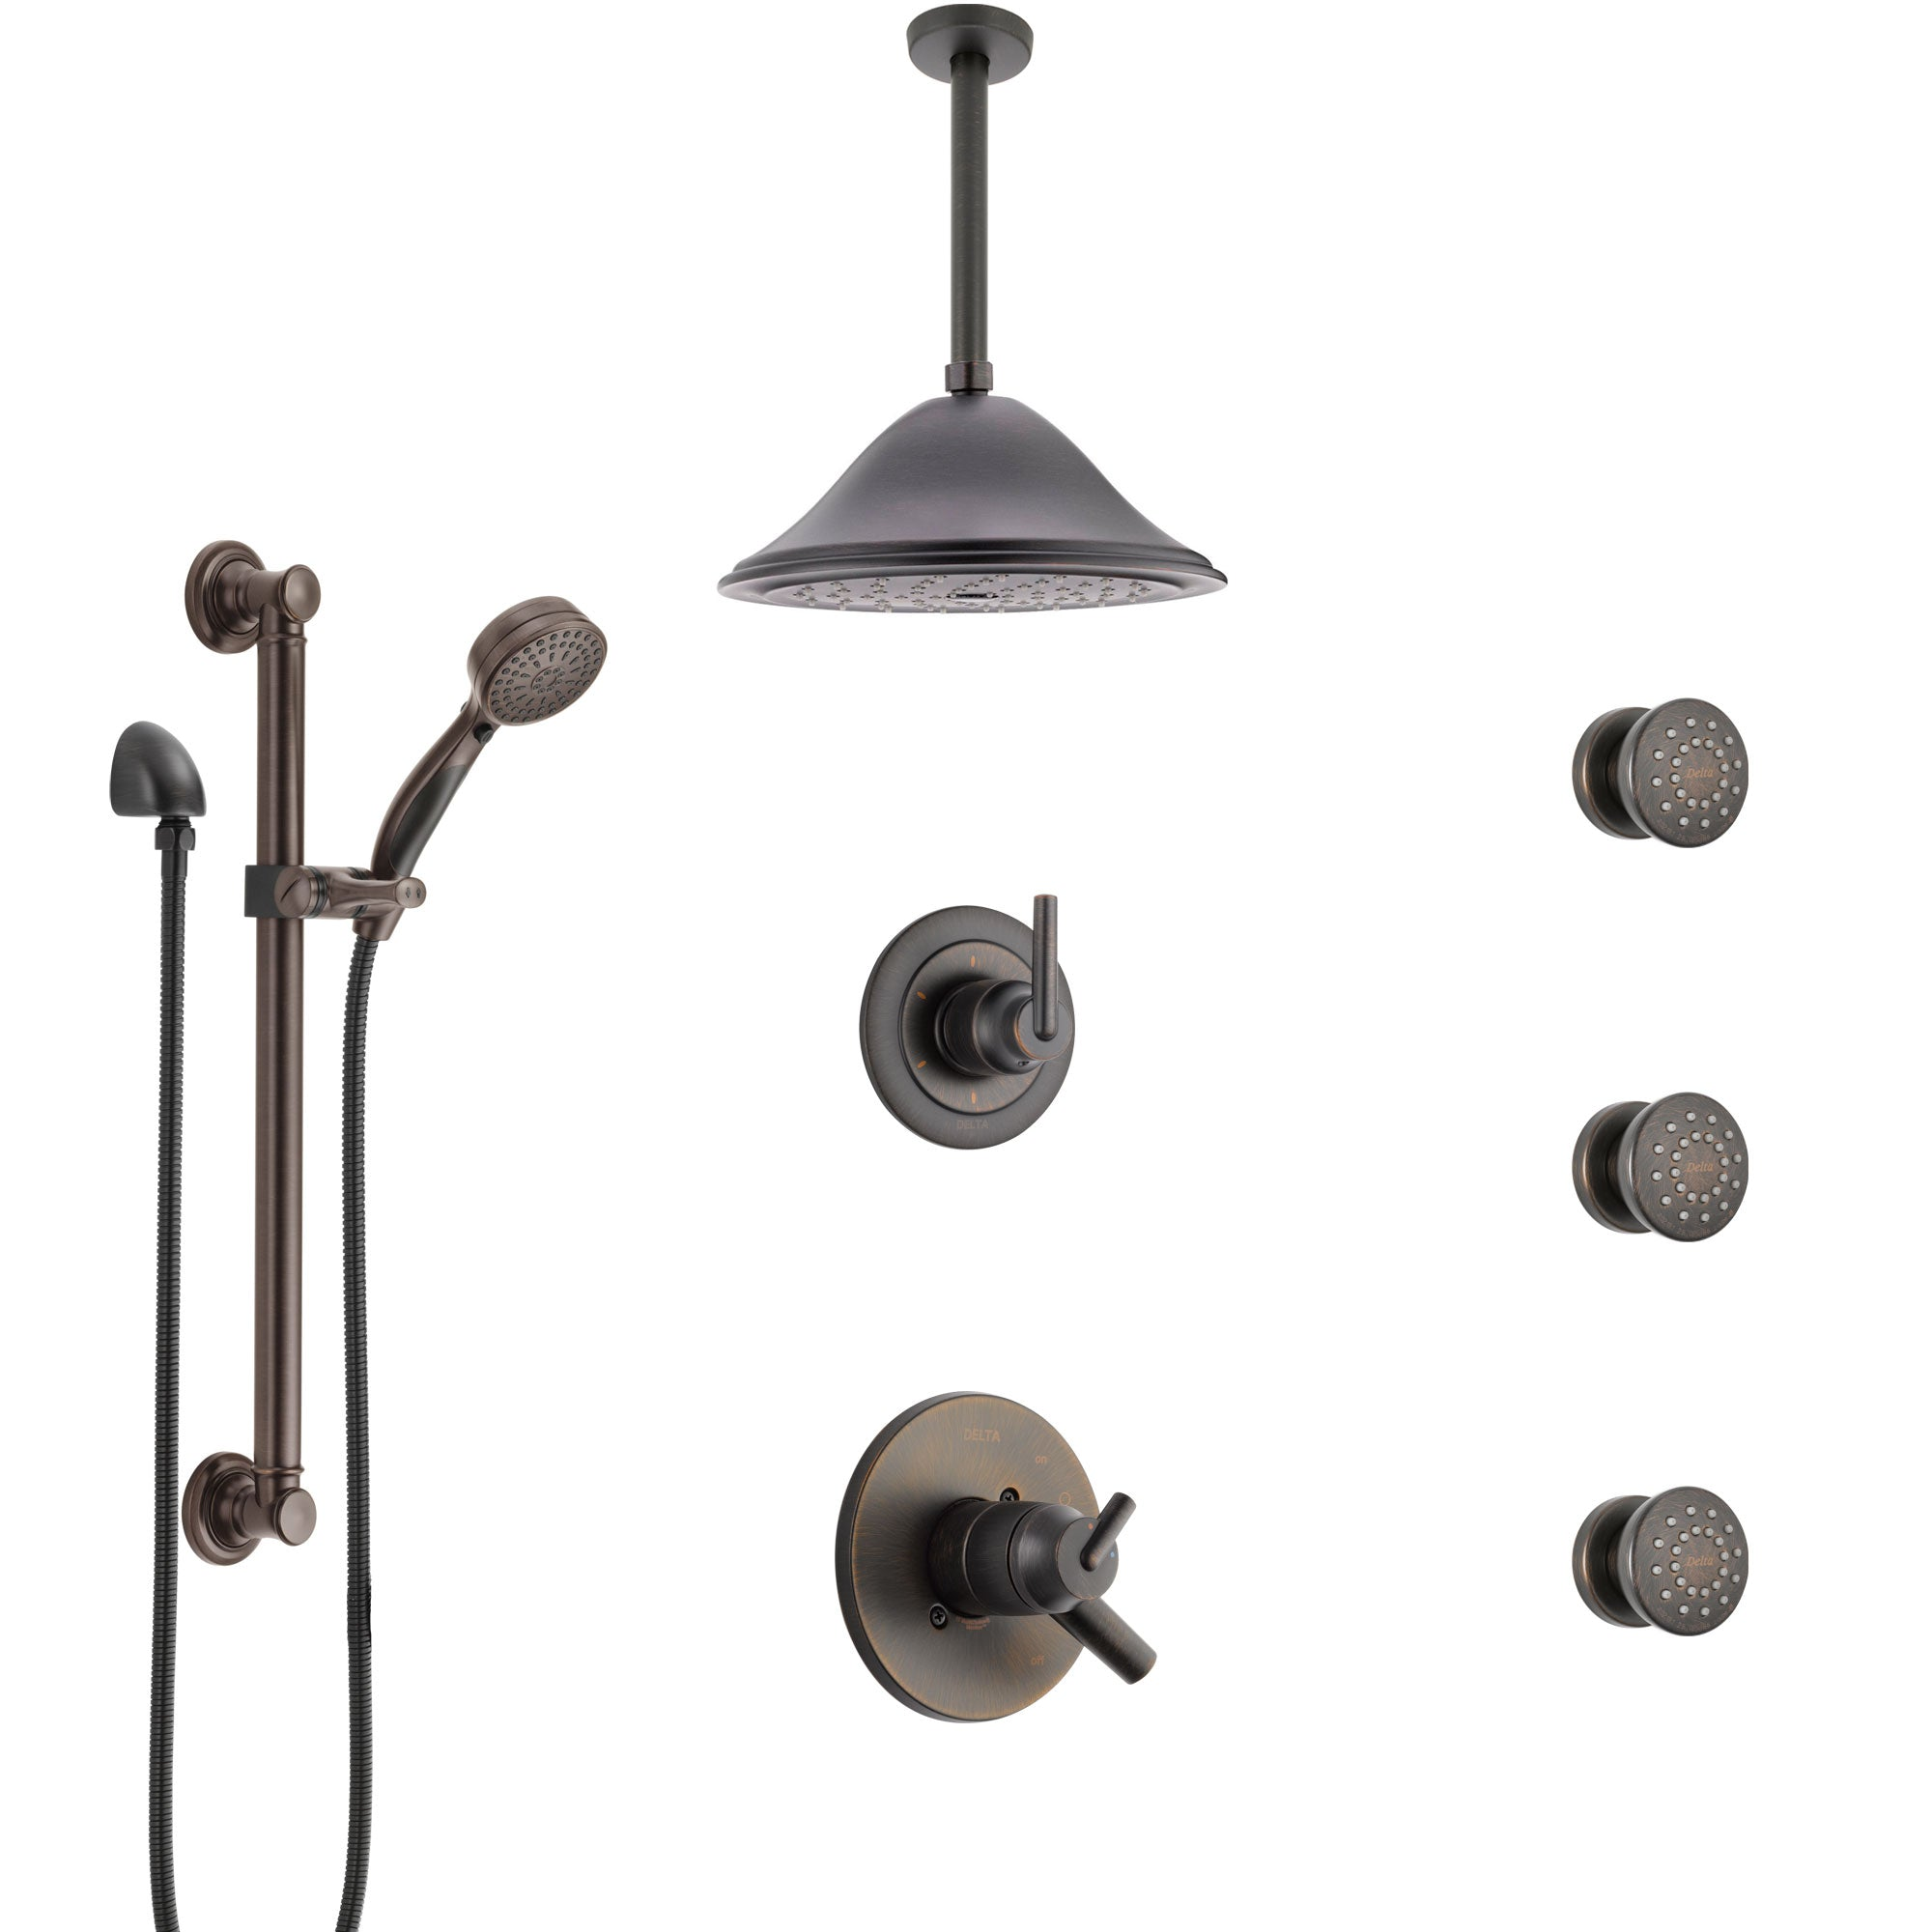 Delta Trinsic Venetian Bronze Dual Thermostatic Control Shower System, Diverter, Ceiling Showerhead, 3 Body Sprays, Grab Bar Hand Spray SS17T591RB5